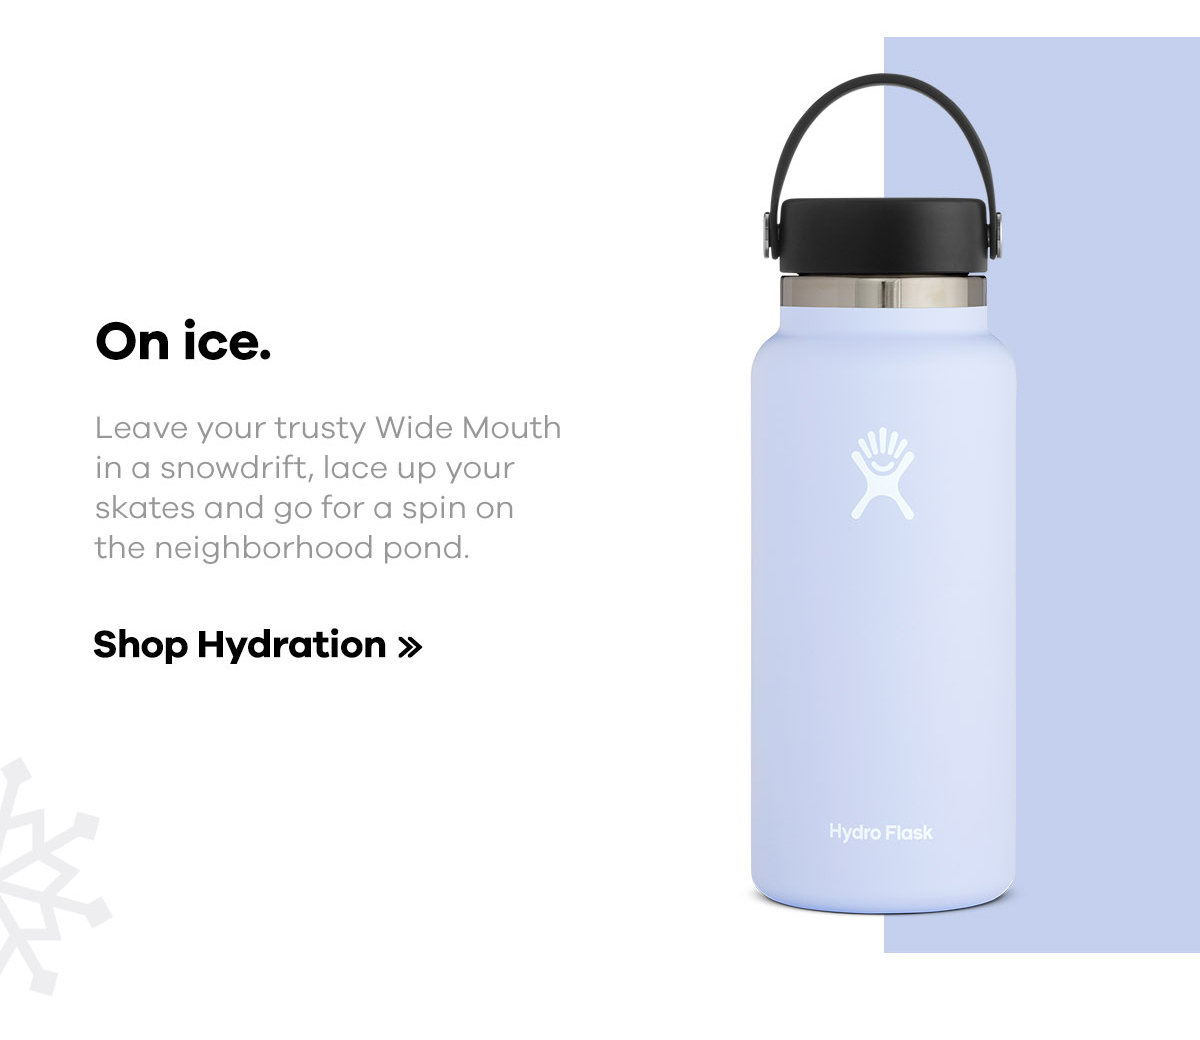 On ice. Leave your trusty Wide Mouth in a snowdrift, lace up your skates and go for a spin on the neighborhood pong. | Shop Hydration >>